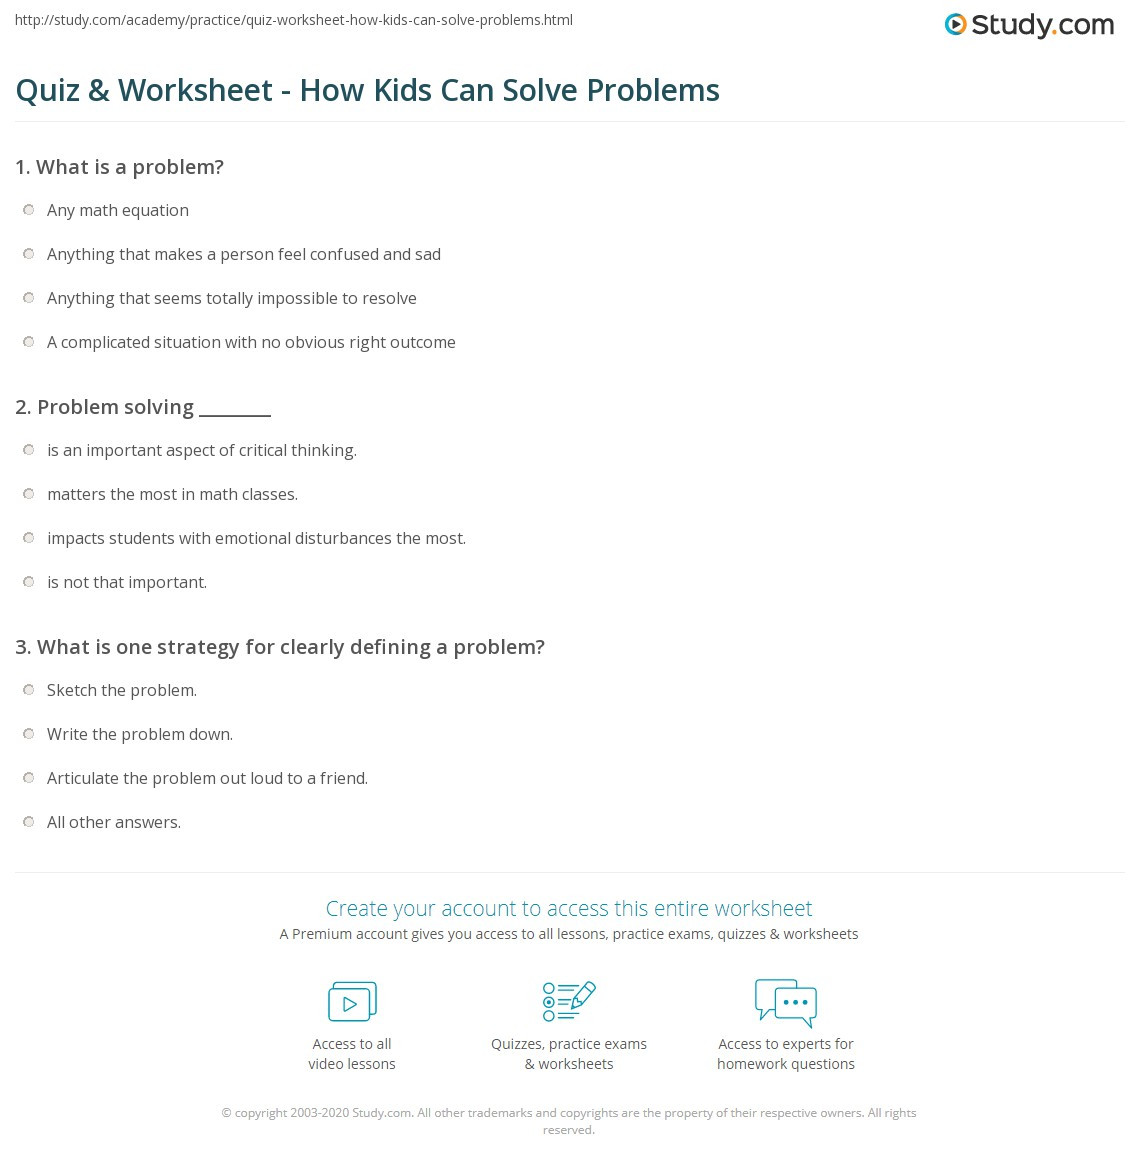 Problem solving Skills Worksheets Quiz & Worksheet How Kids Can solve Problems